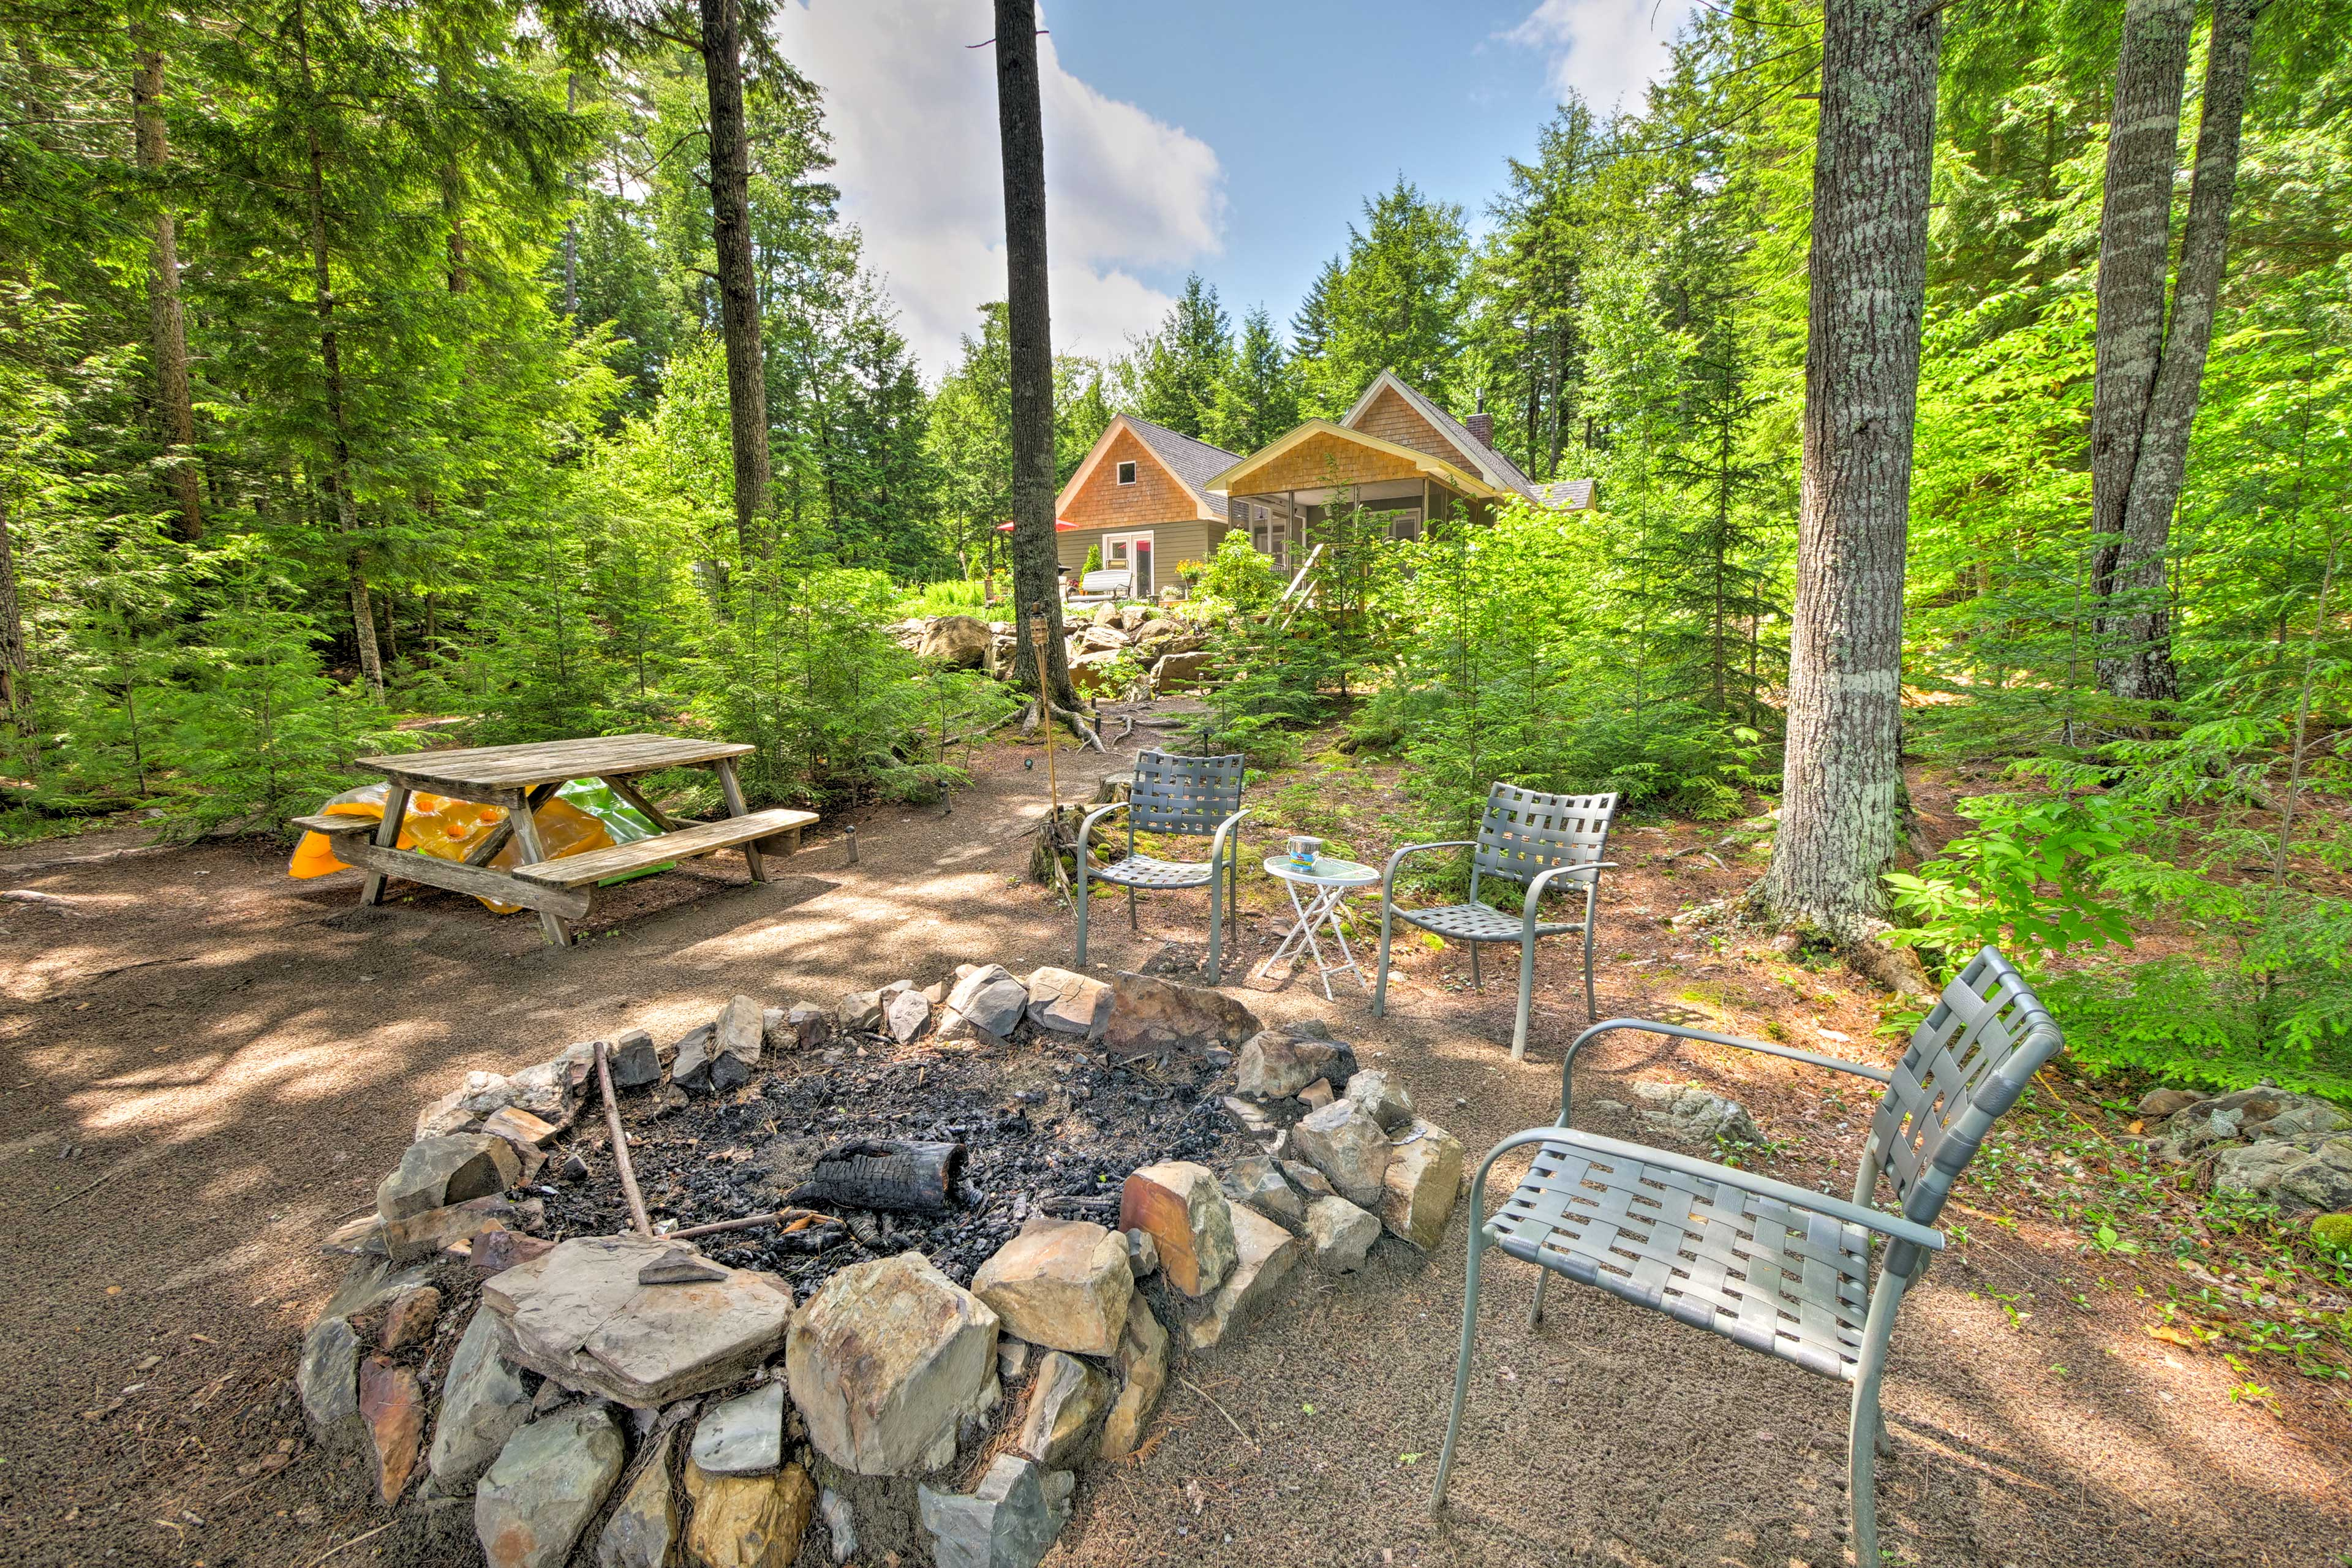 Travel towards the water to find a large fire pit and picnic table.